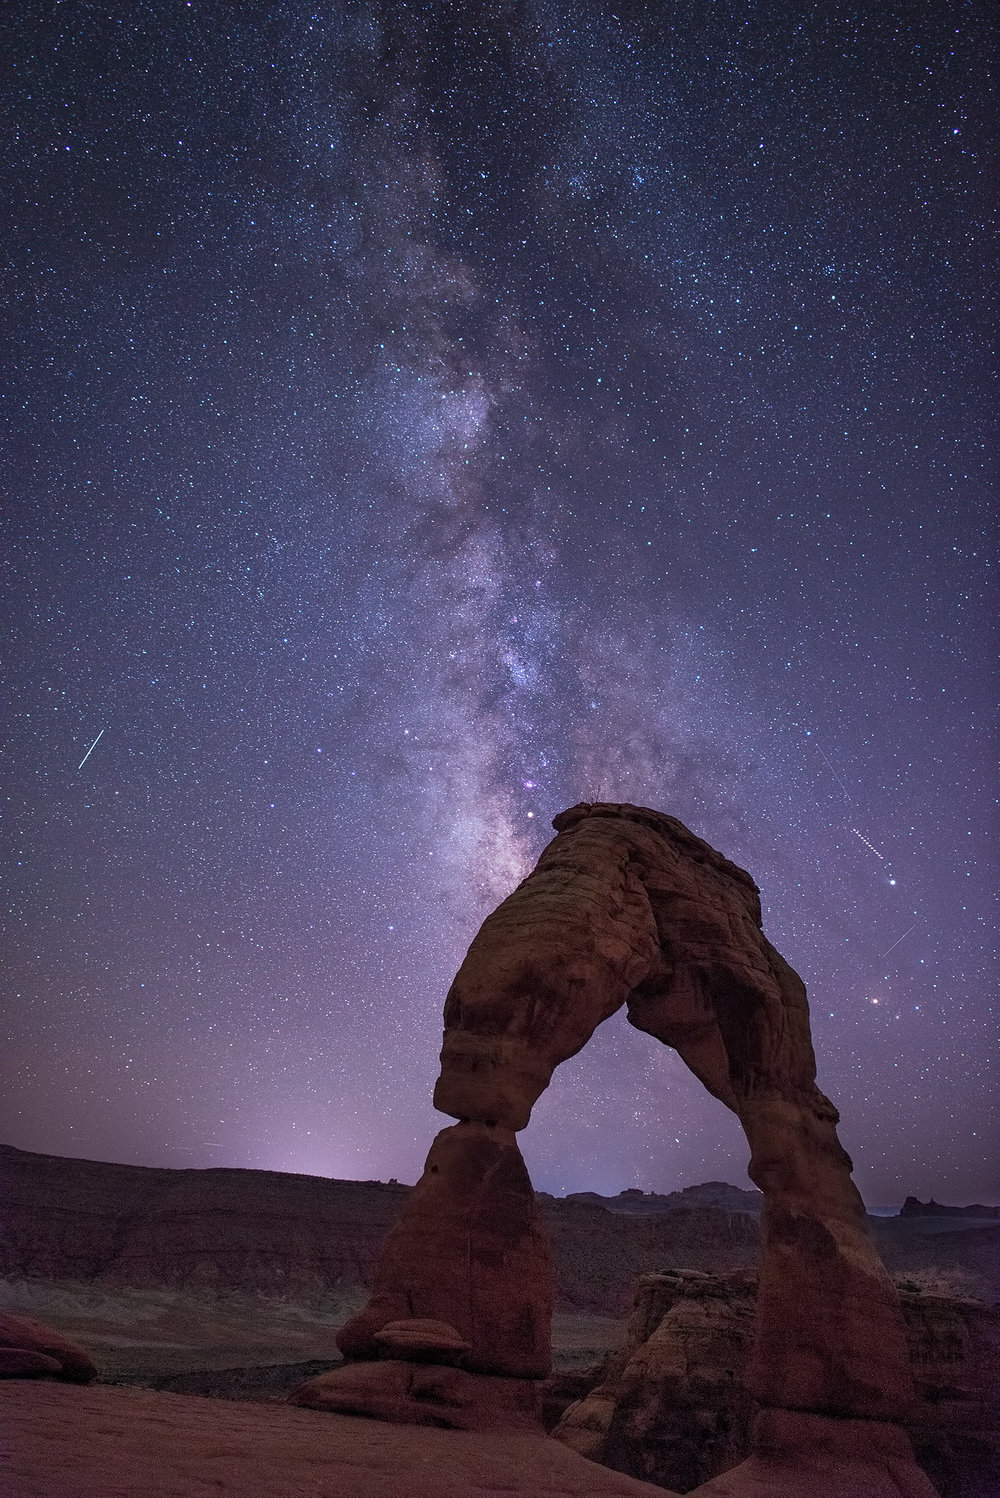 The Milky Way above Delicate Arch, in Arches National Park.